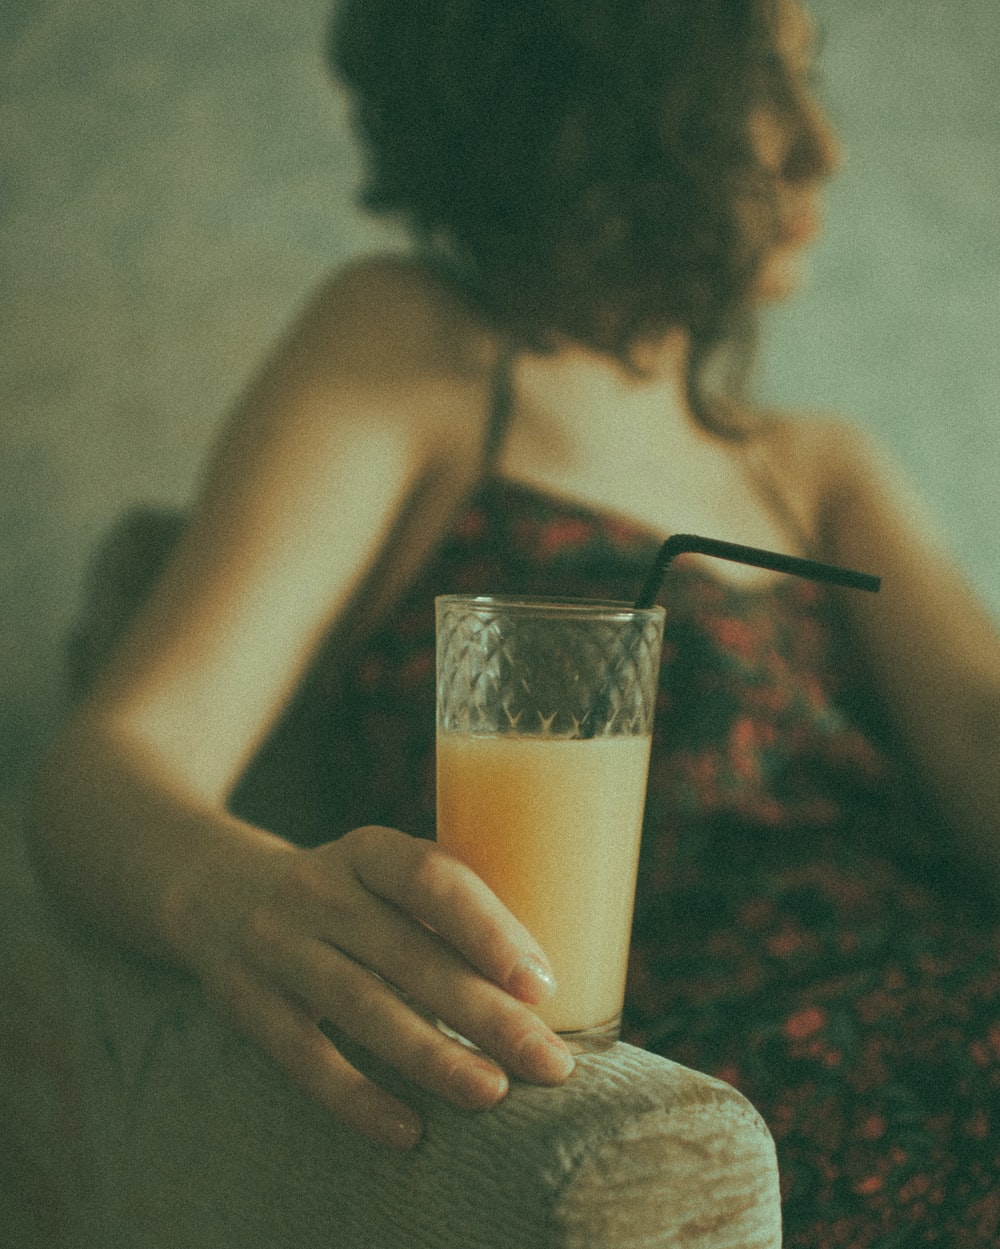 woman holding clear drinking glass with brown liquid